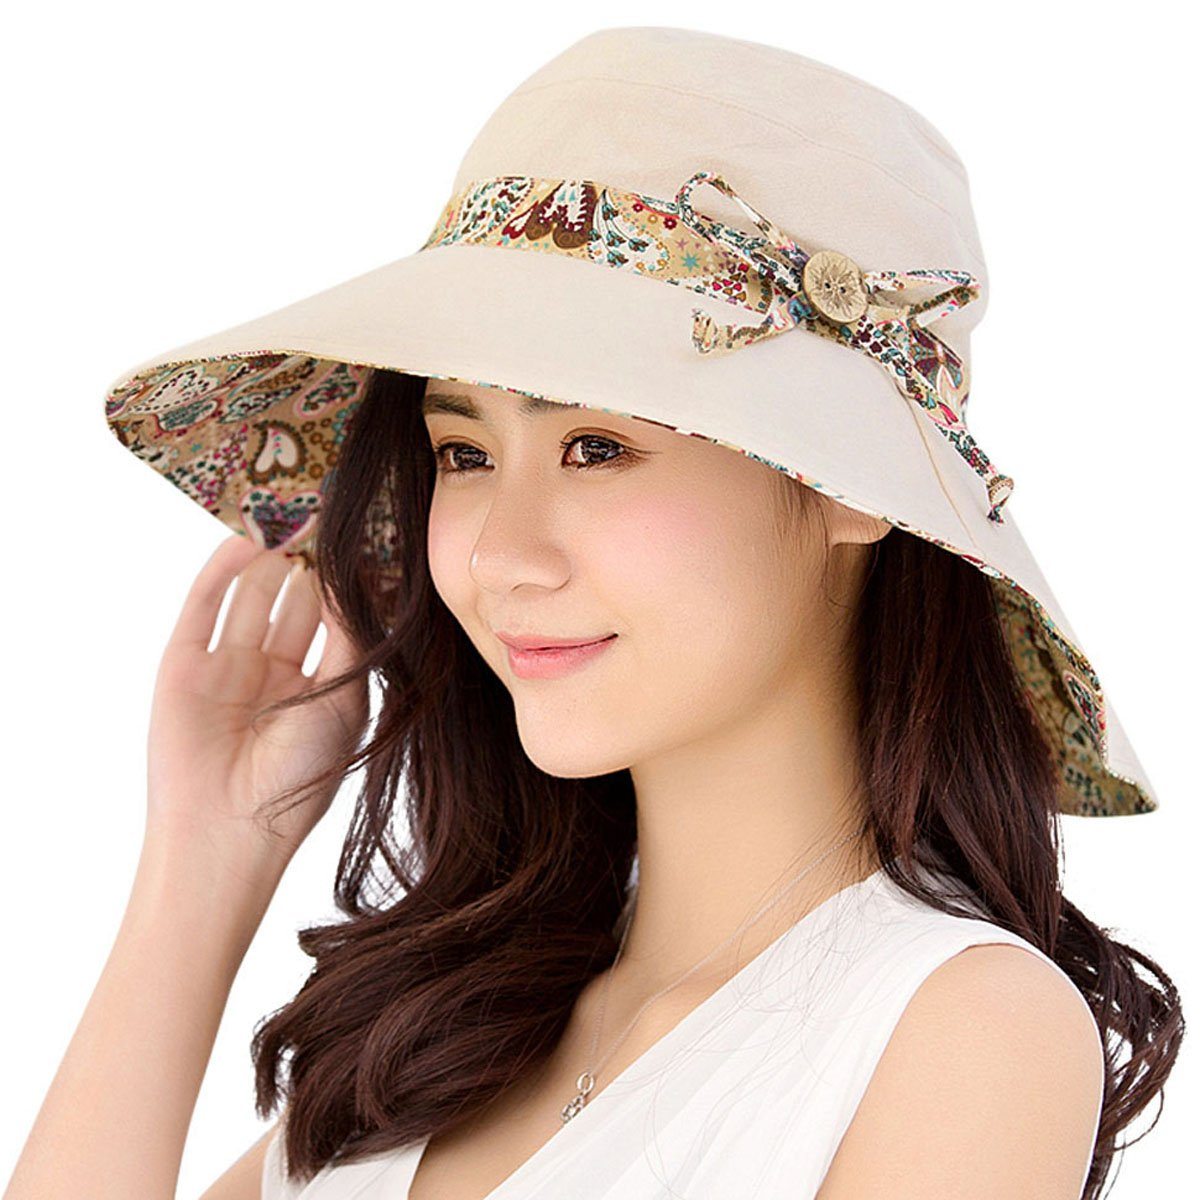 HindaWi Womens Sun Hat Summer Reversible UPF 50+ Beach Hat Foldable Wide Brim Cap, Beige